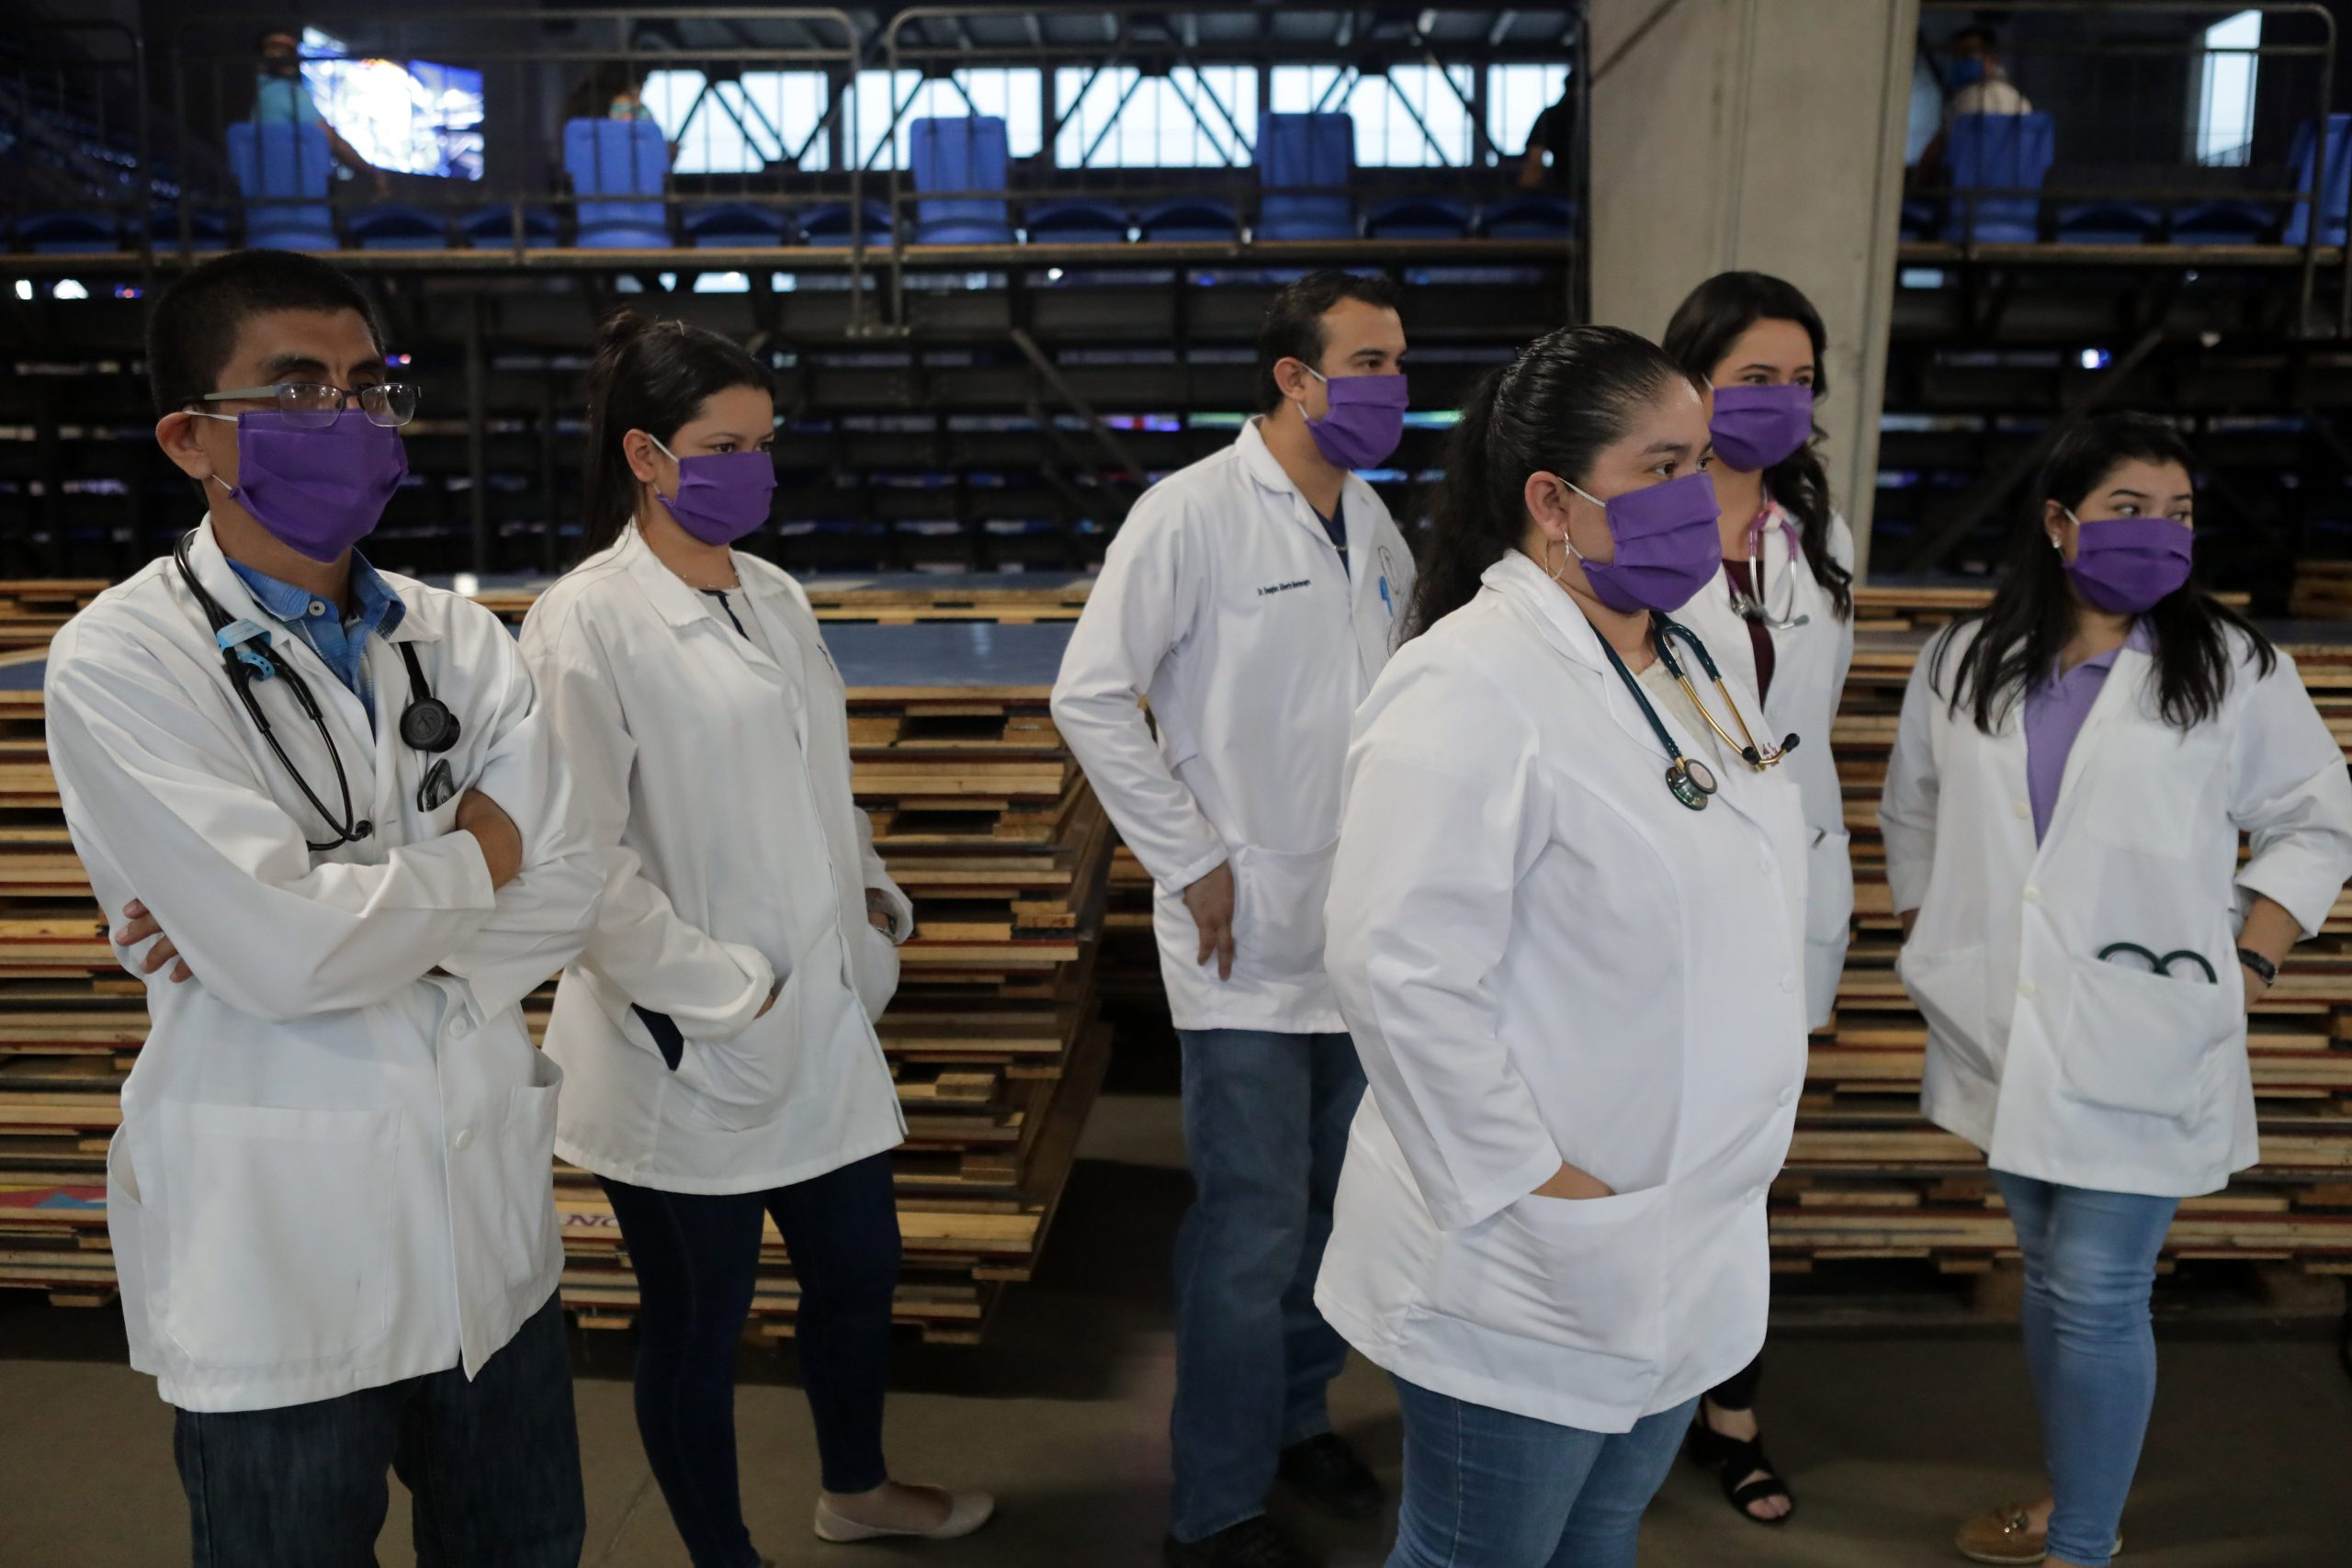 MANAGUA, NICARAGUA - APRIL 25: Doctors stand together wearing face masks at Alexis Arguello Sports Center on April 25, 2020 in Managua, Nicaragua. Nicaragua is one of the very few countries that allow sport events during the COVID-19 pandemic. (Photo by Inti Ocon/Getty Images)